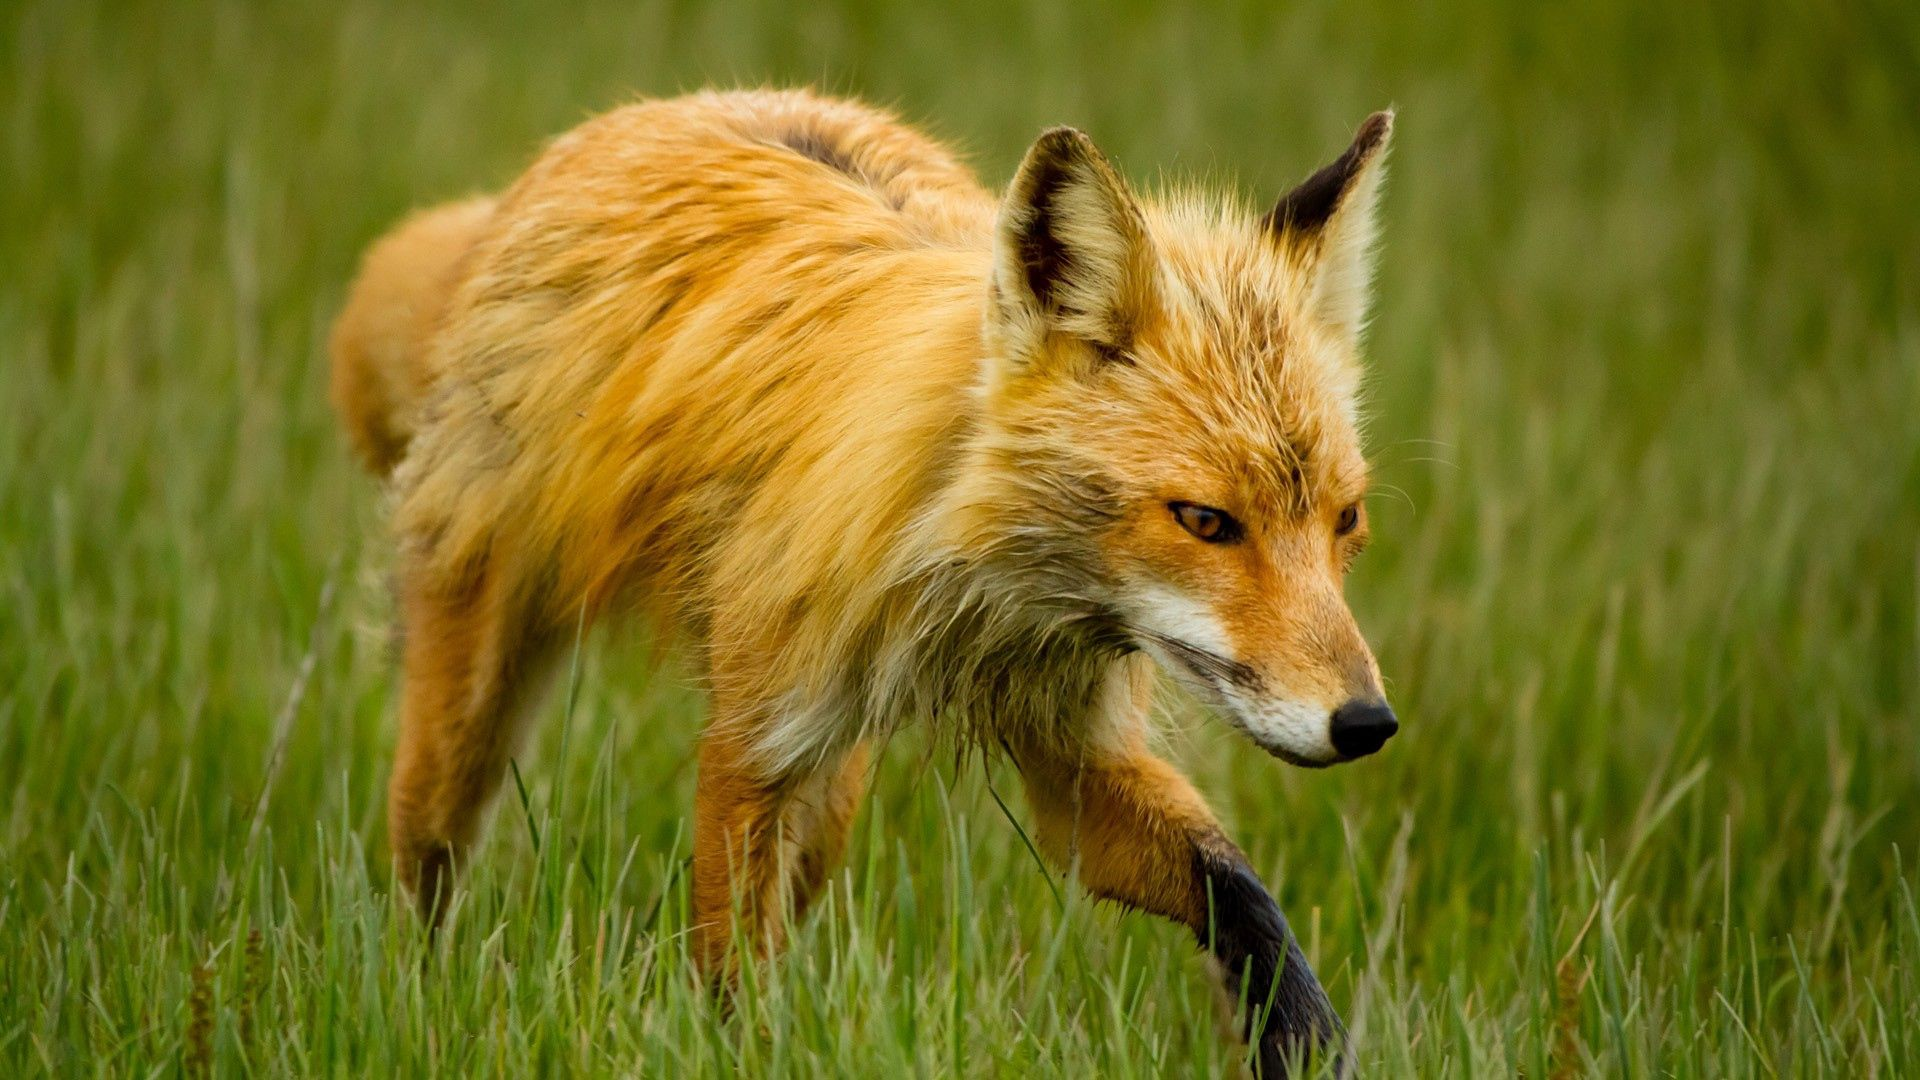 89560 download wallpaper Animals, Fox, Grass, Stroll screensavers and pictures for free